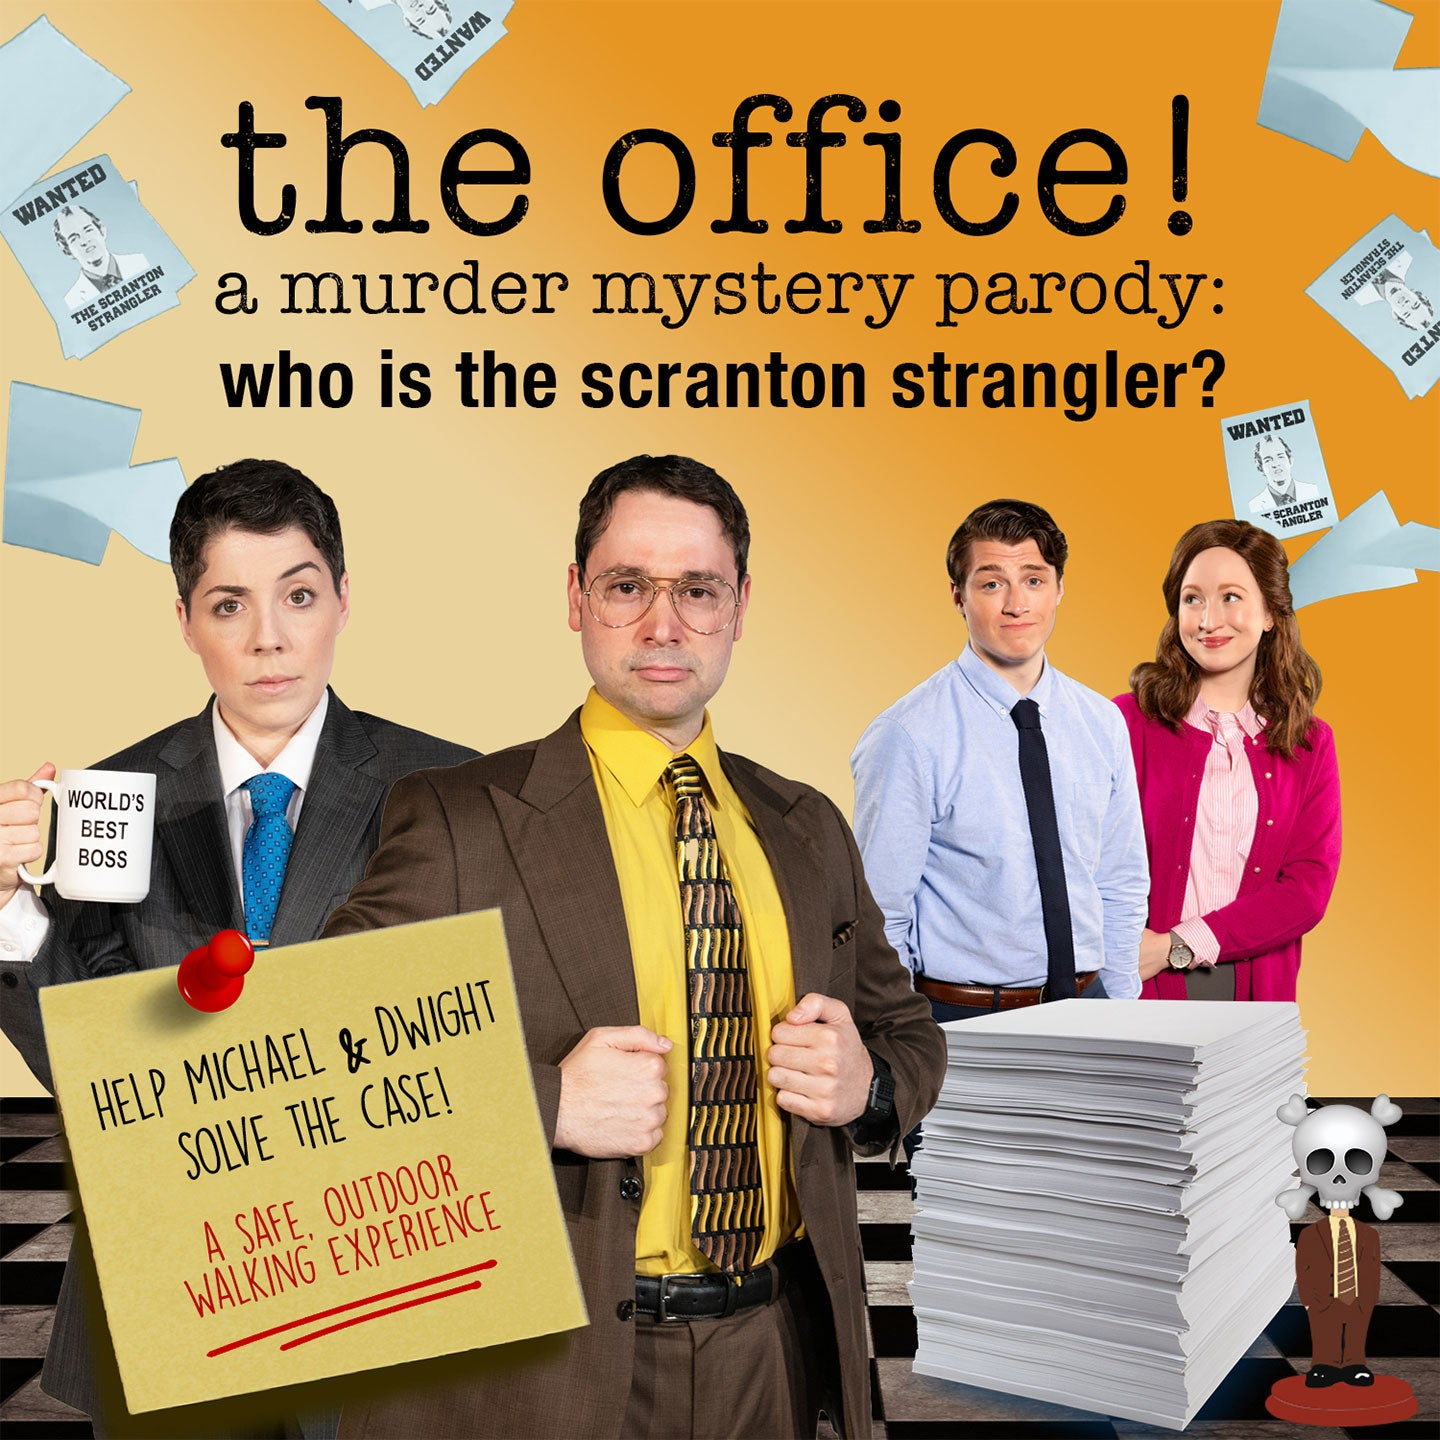 The Office! A Murder Mystery Parody: Who is the Scranton Strangler?